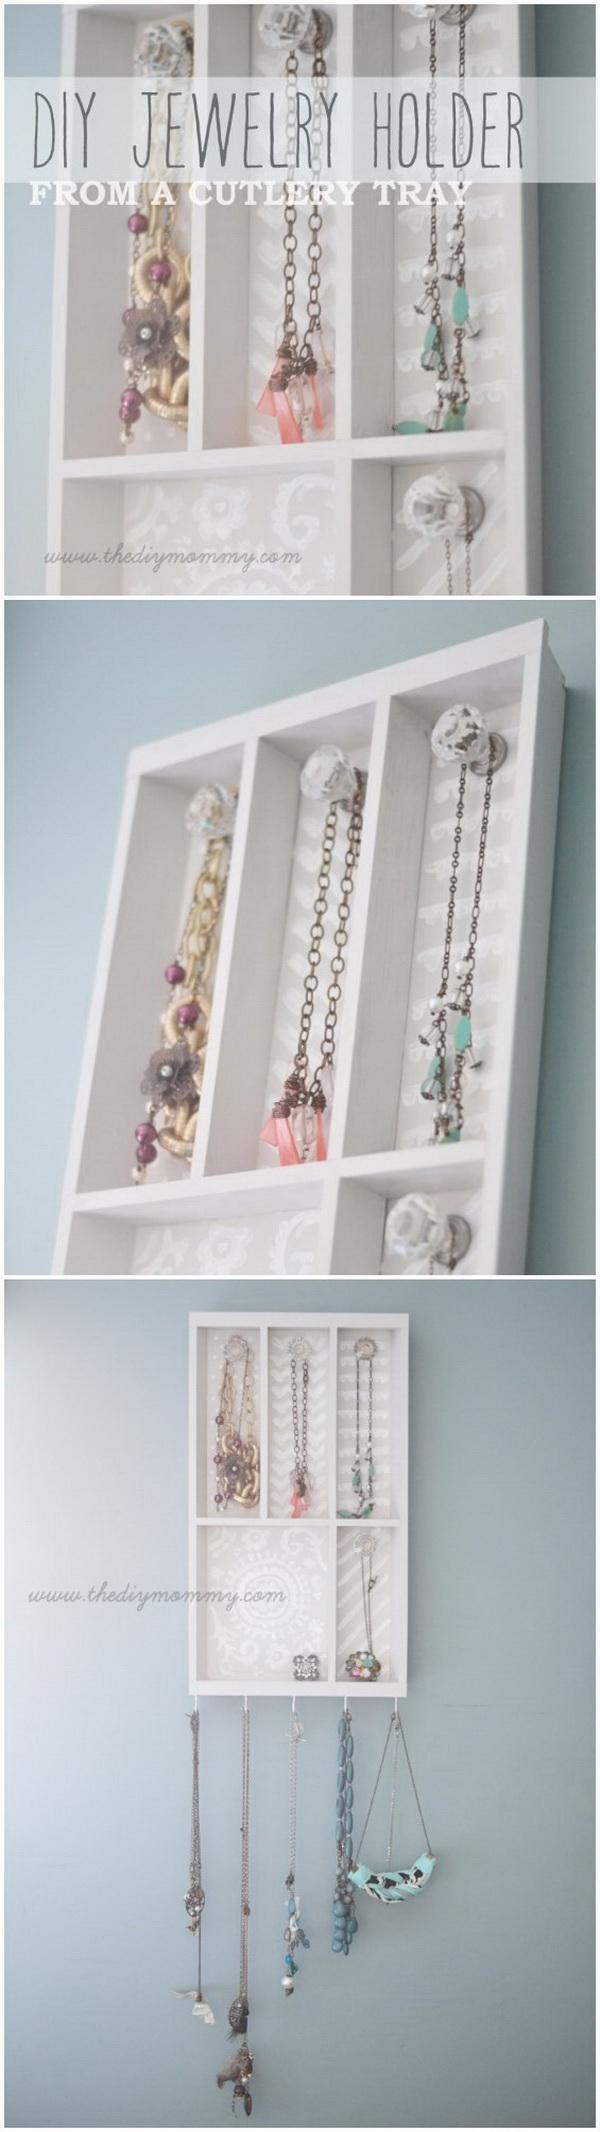 DIY Jewelry Holder from a Cutlery Tray.